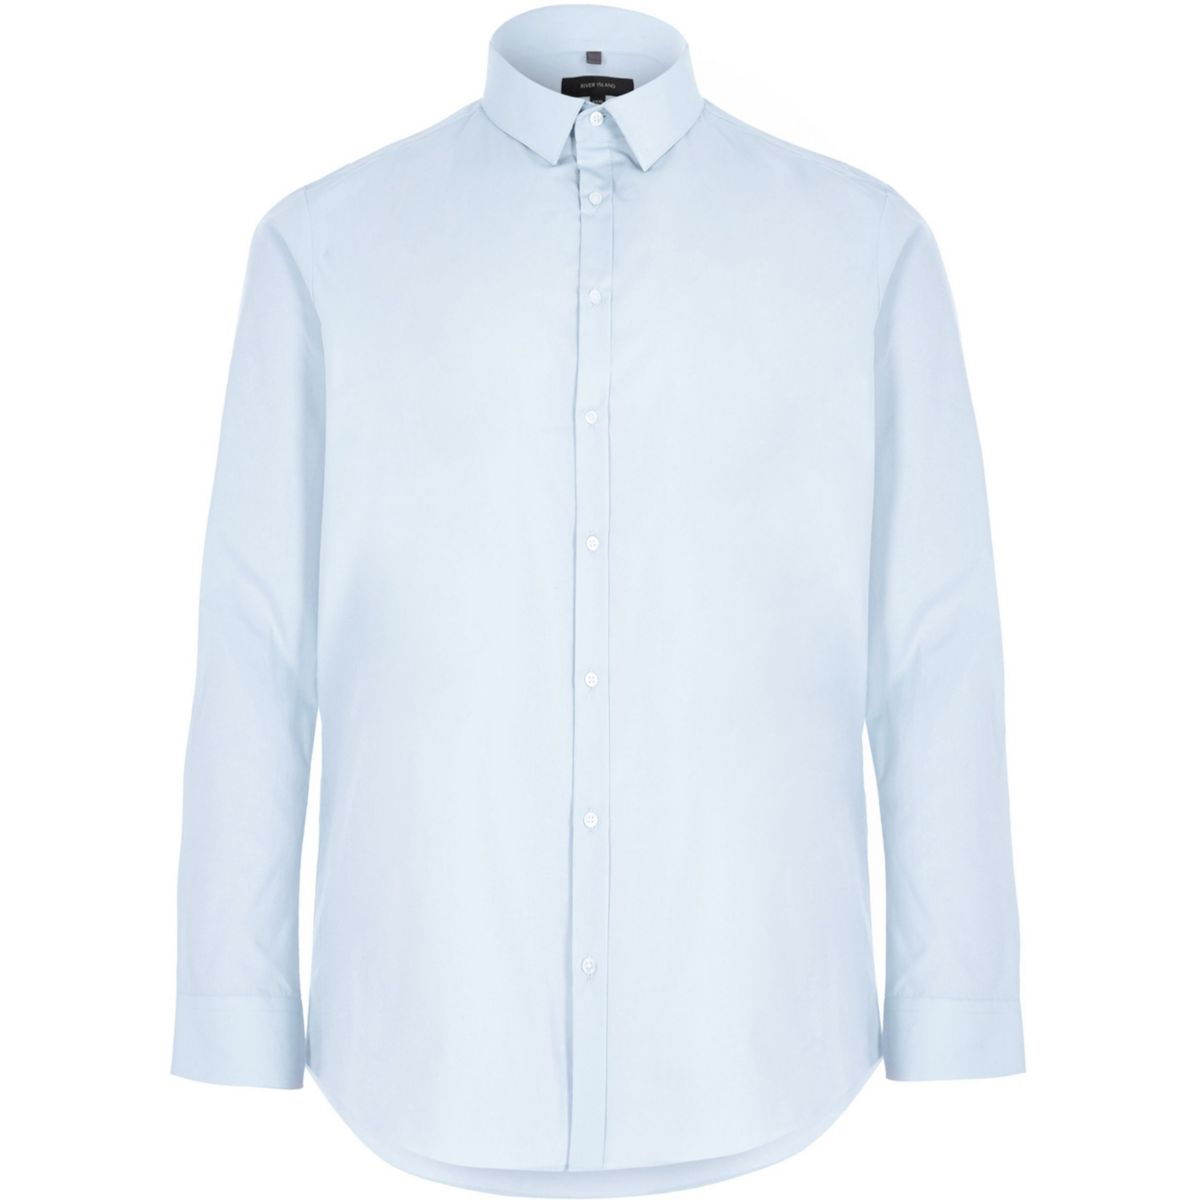 Big and tall blue slim fit poplin shirt shirts sale men for Slim and tall shirts